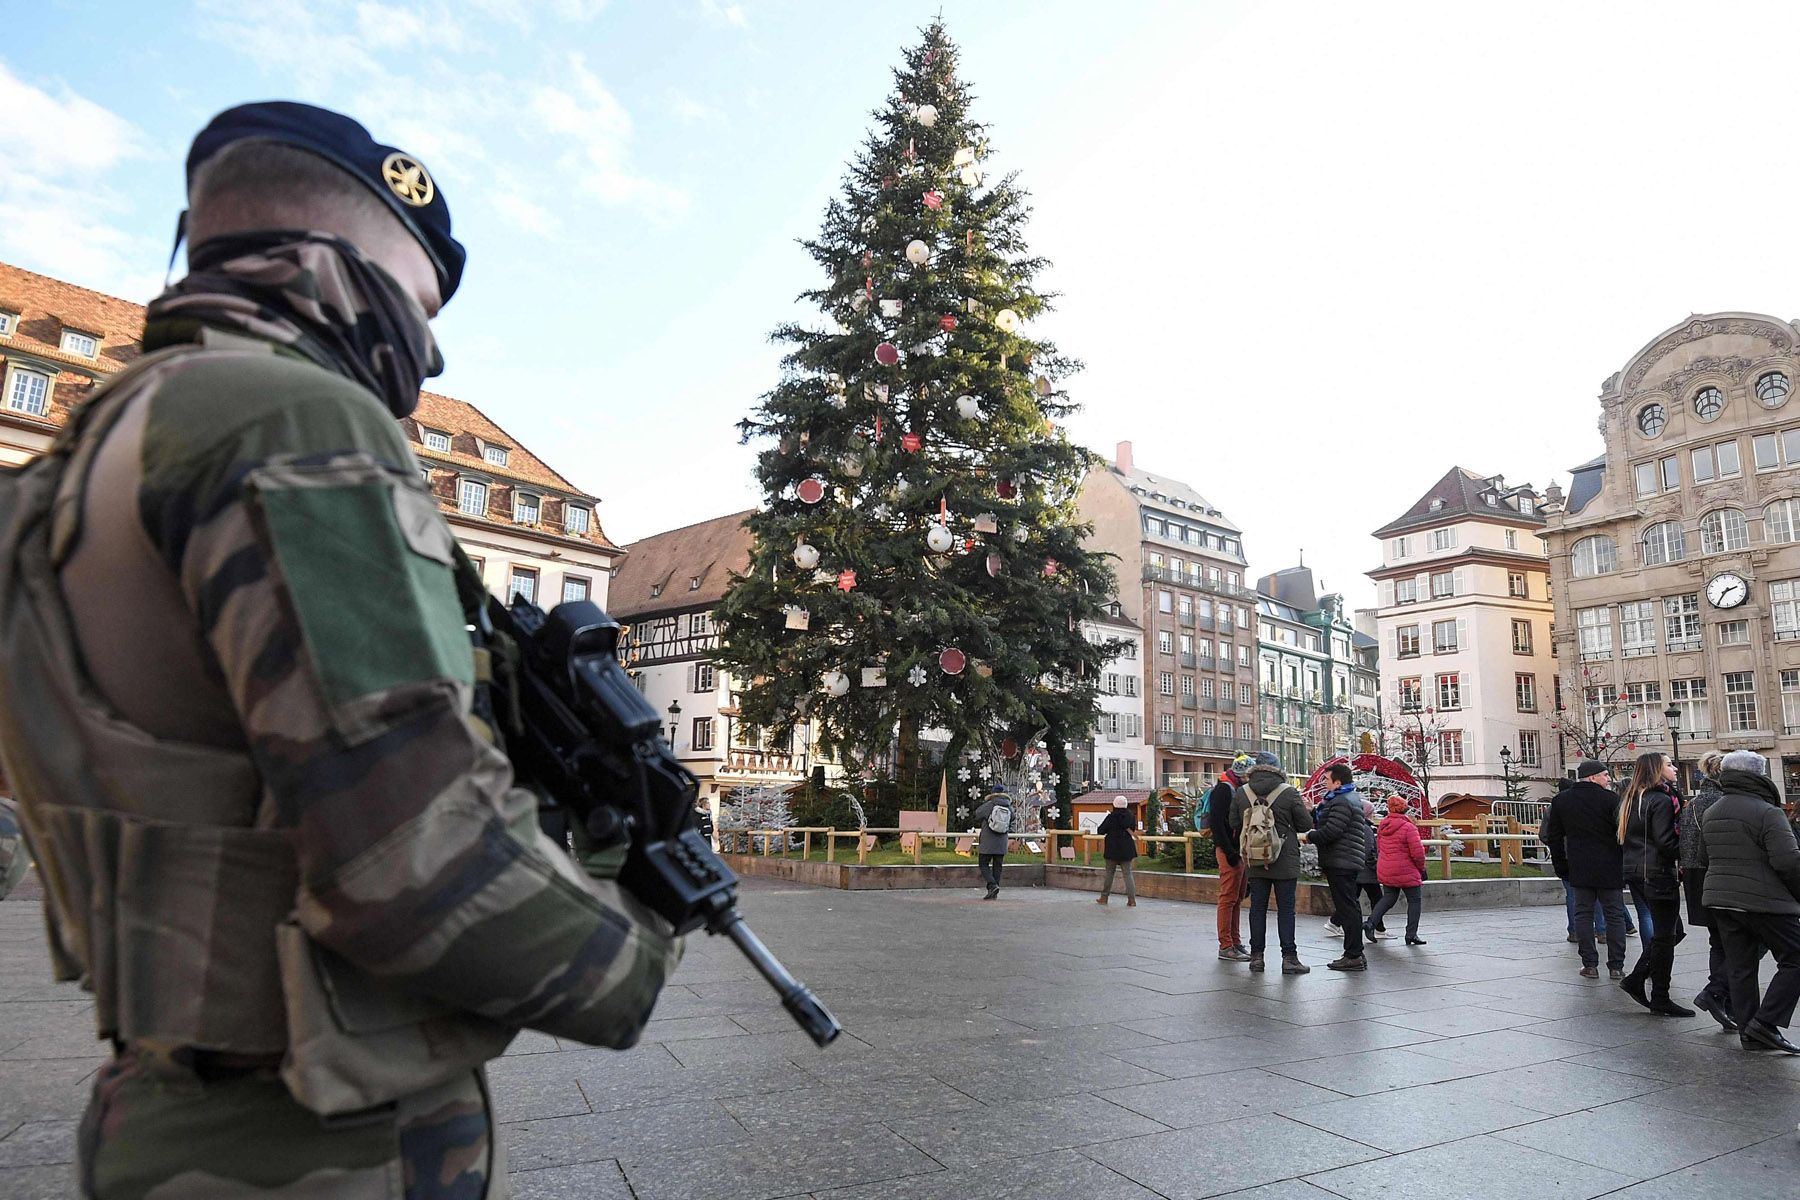 A French soldier from the Sentinelle security operation stands guard next to the Christmas tree on Place Kleber, in central Strasbourg on December 13, 2018